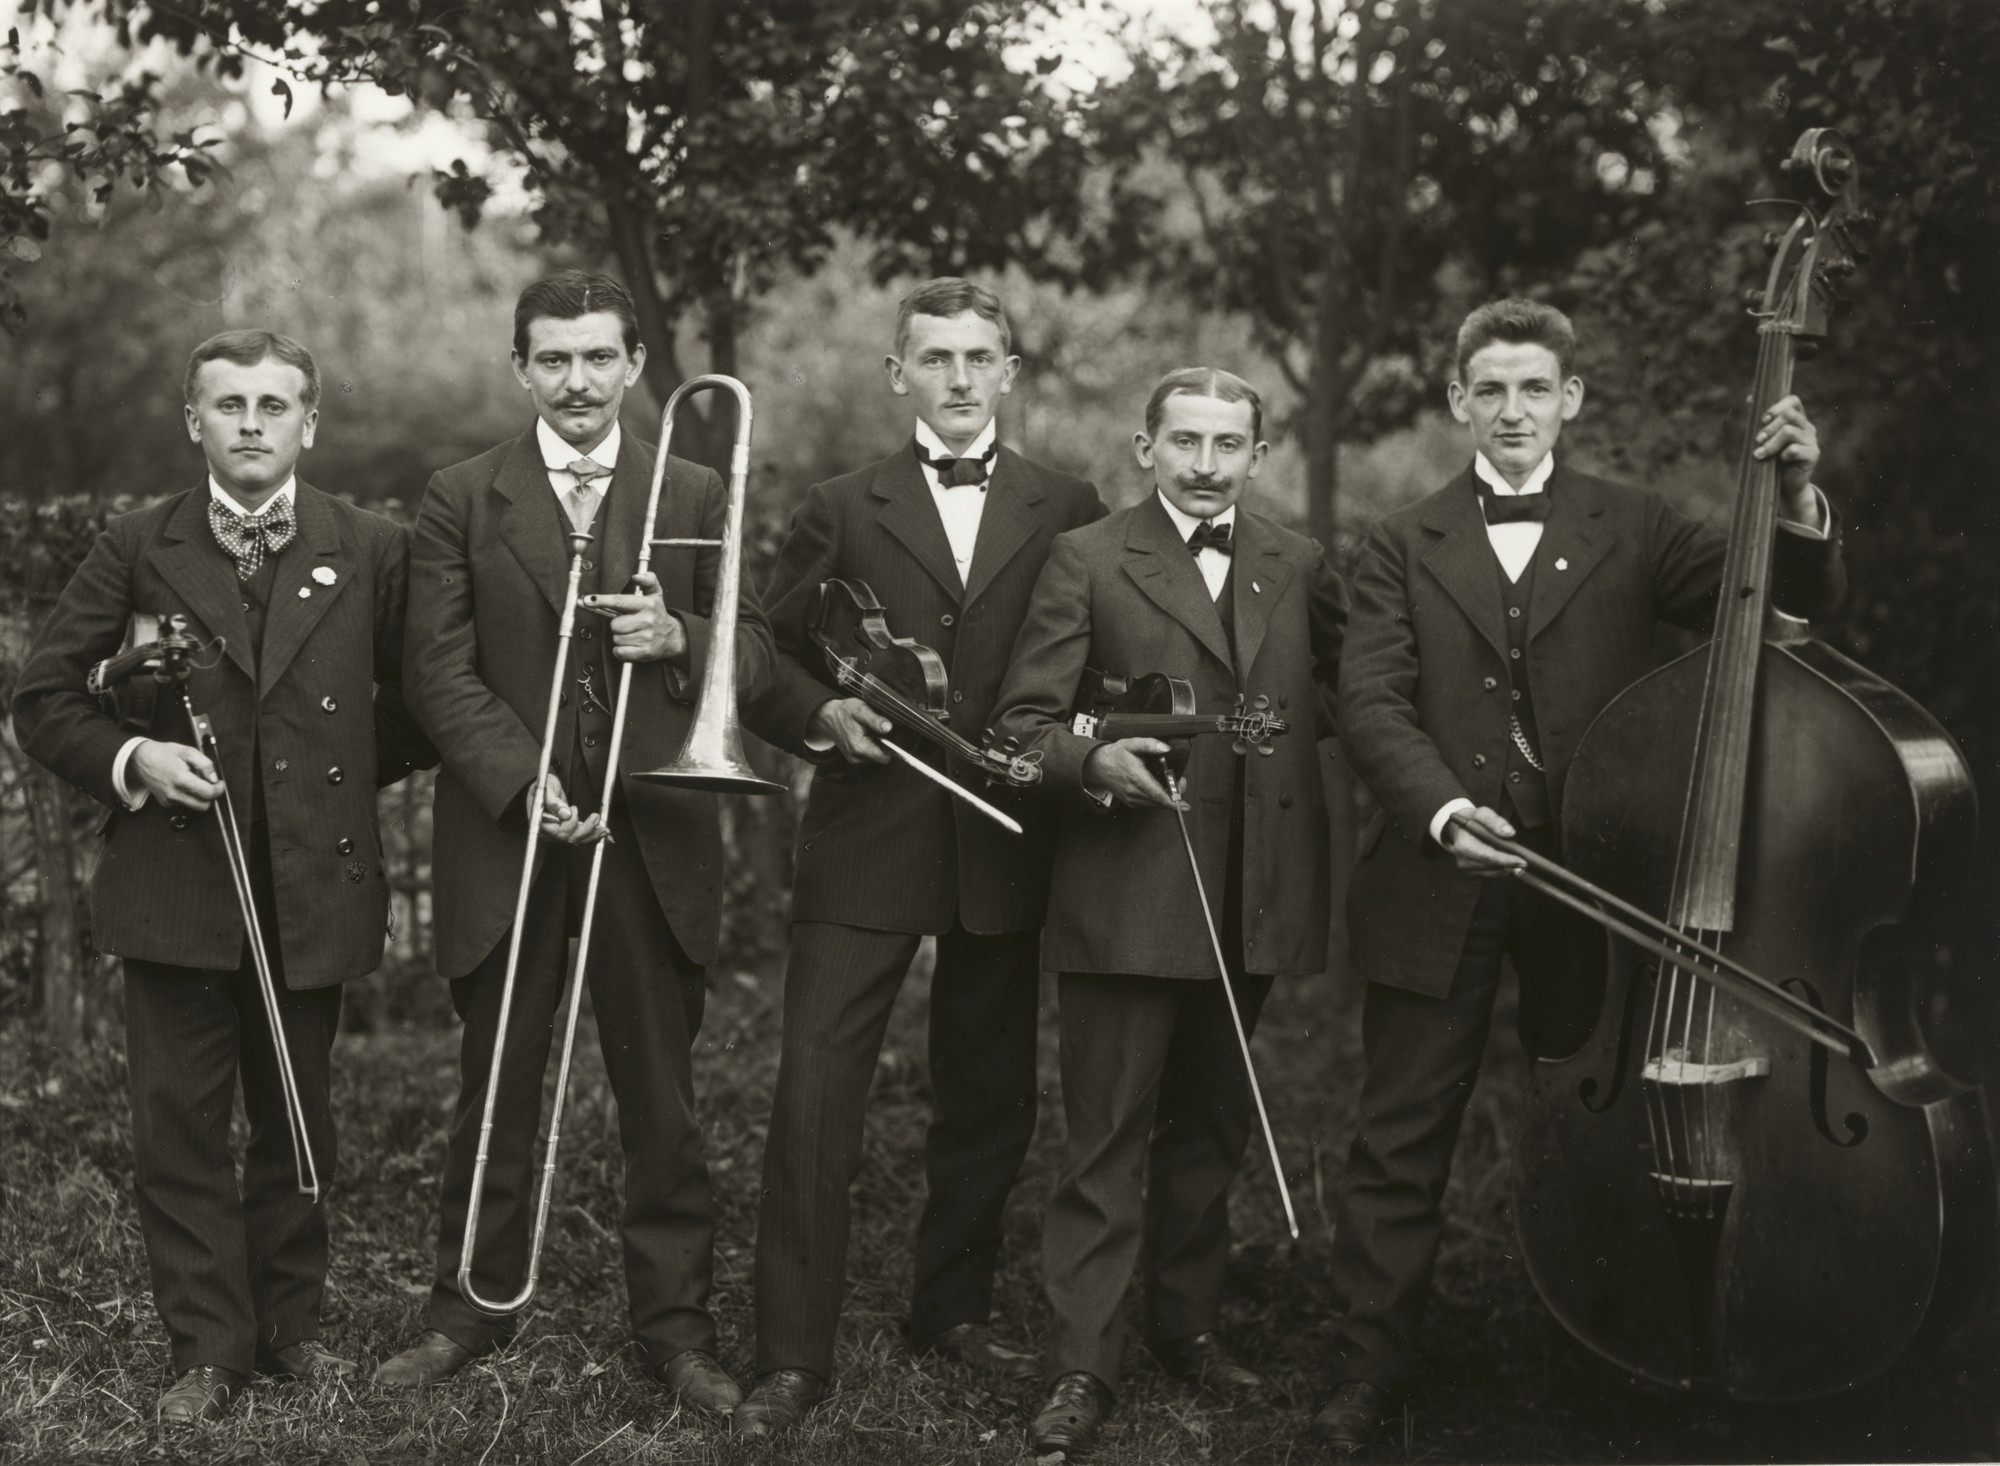 August Sander. Country Band. 1913